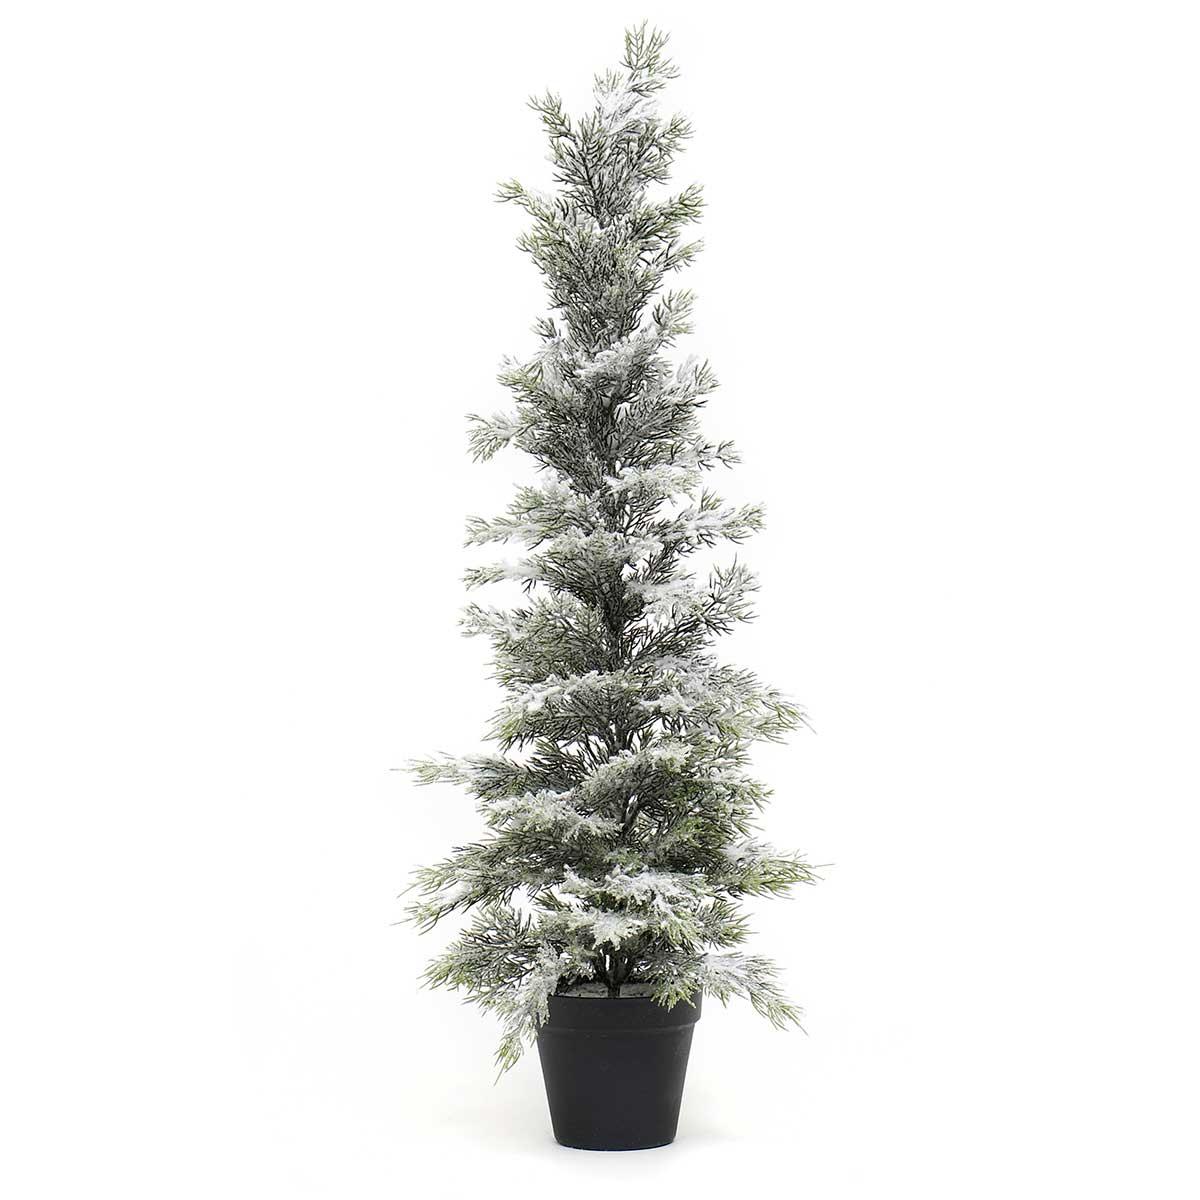 "SNOWED EVERGREEN TREE IN BLACK POT LARGE 10""X30"""